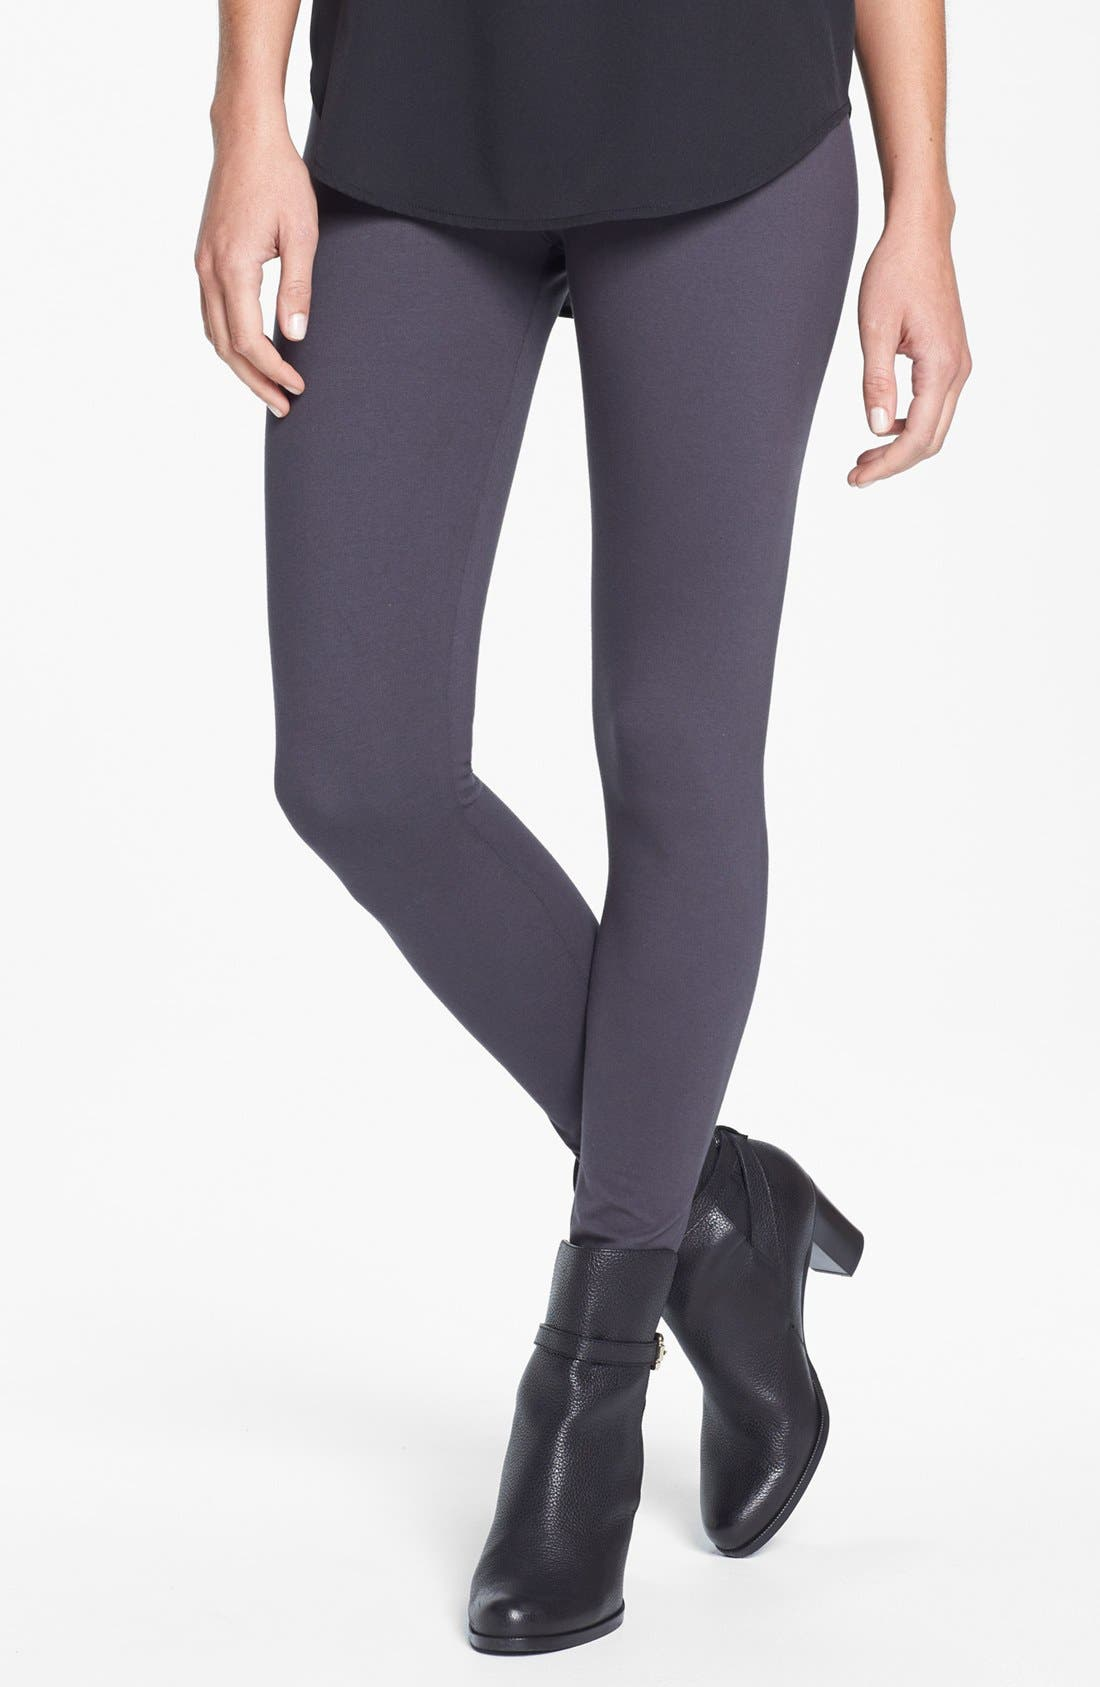 Alternate Image 1 Selected - Lyssé Control Top High Waist Leggings